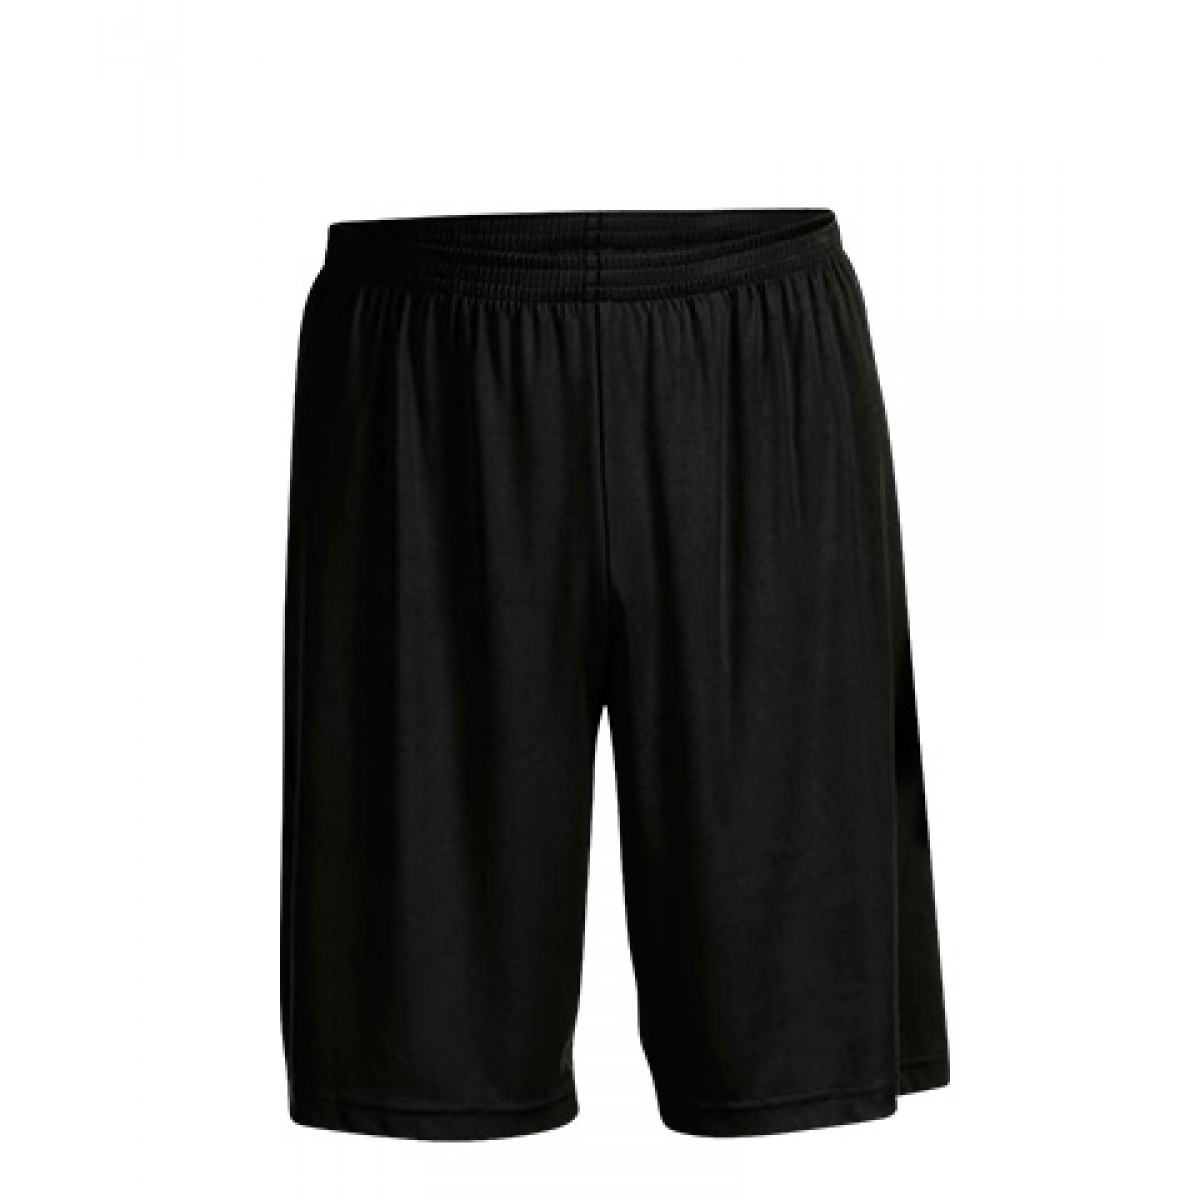 Men's Performance Shorts-Black-S